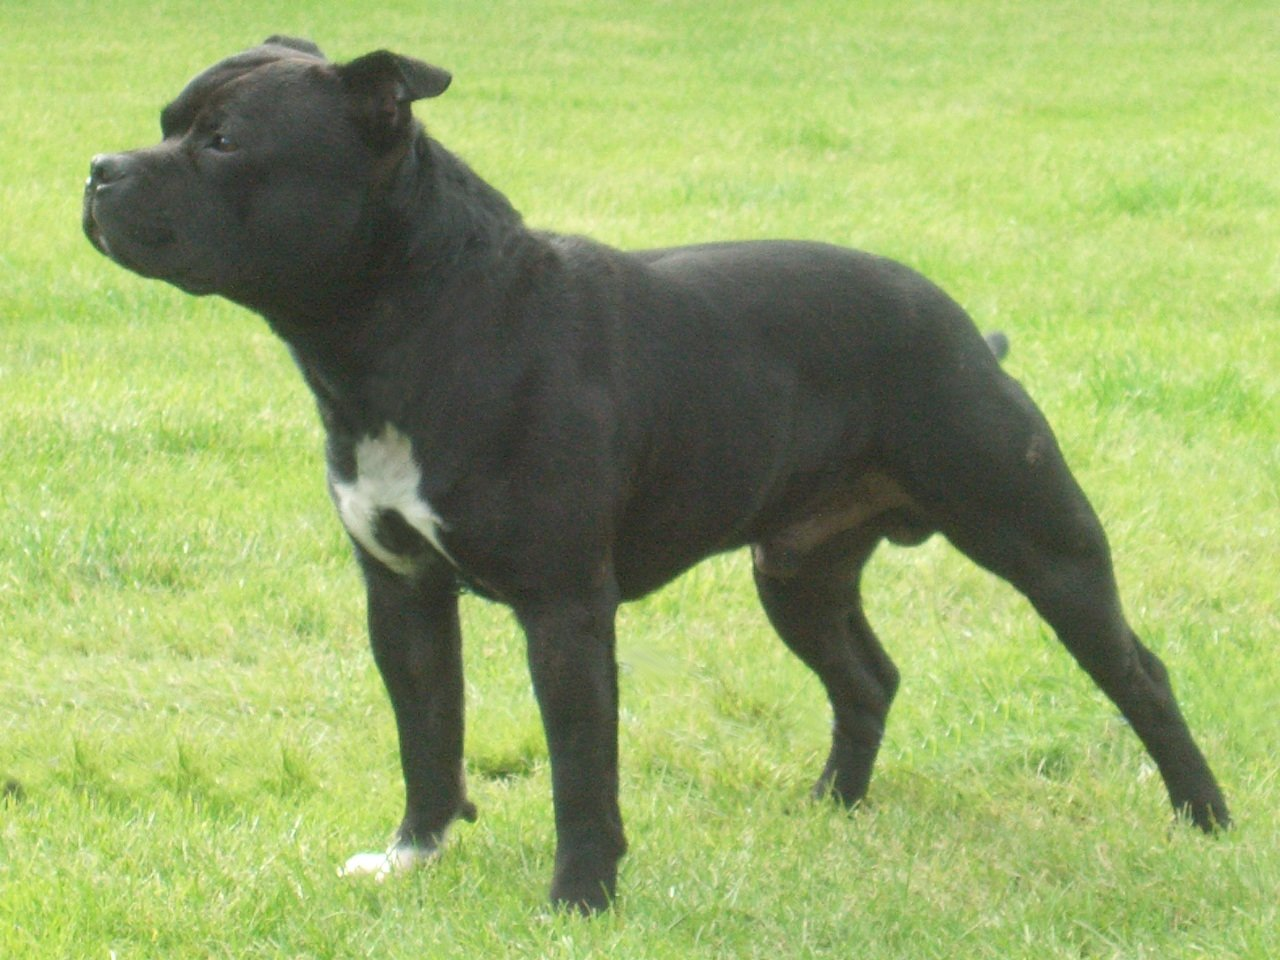 Watching Staffordshire Bull Terrier wallpaper